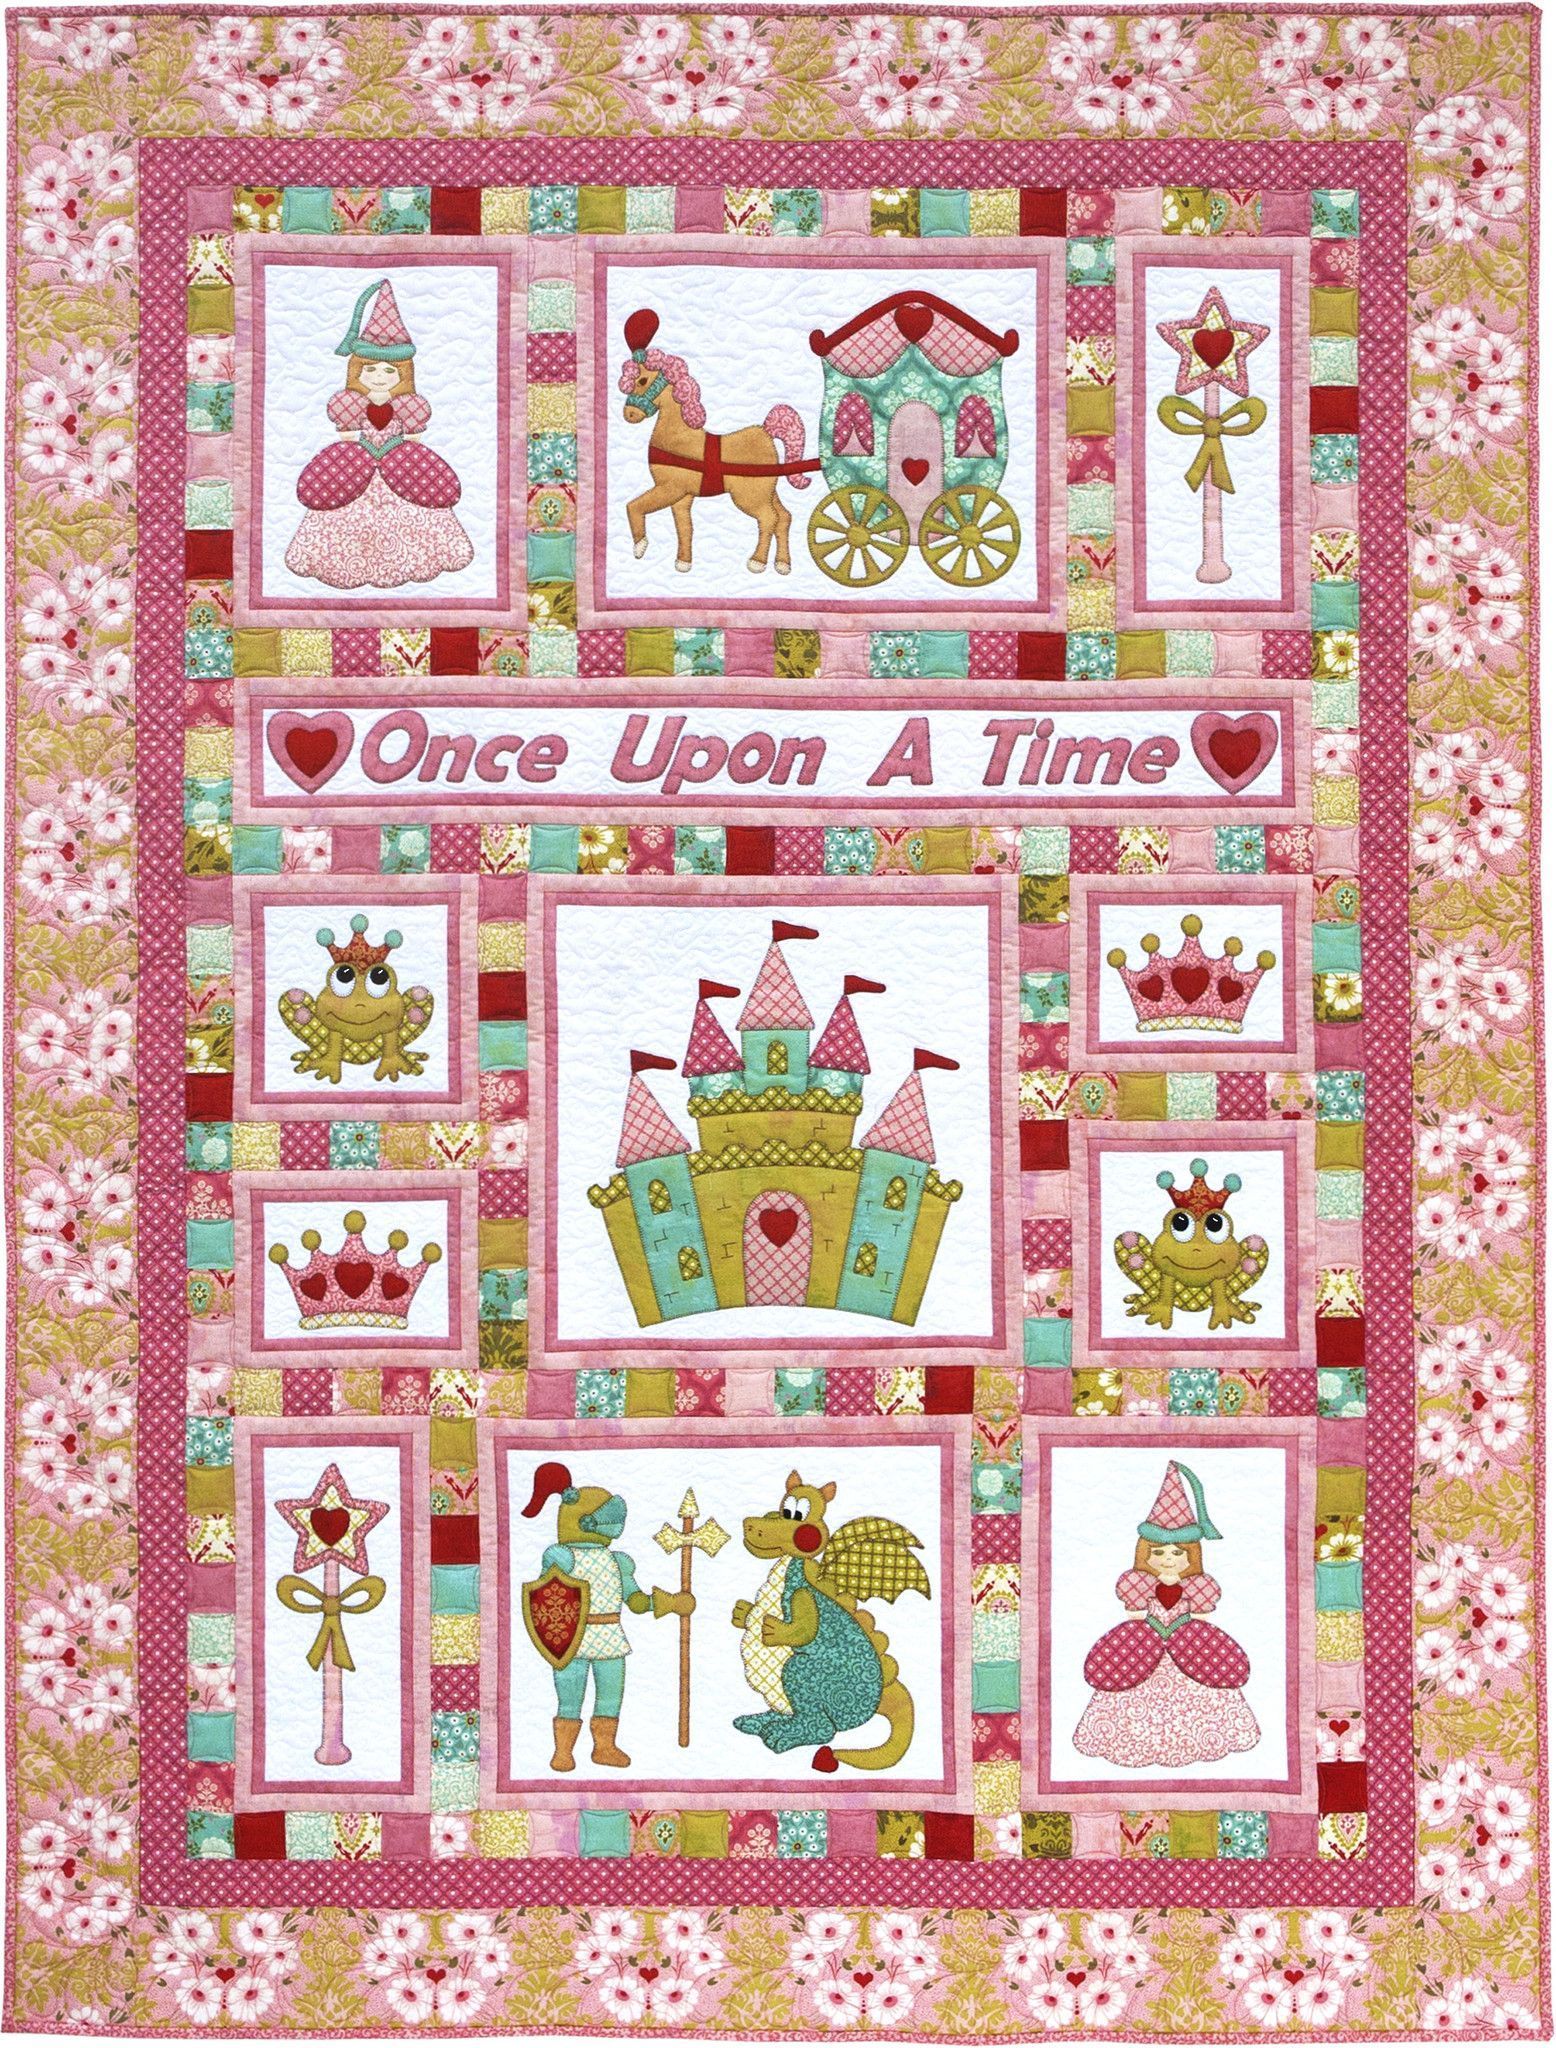 Kids Quilts Once Upon A Time Princess Fairy Tale Applique